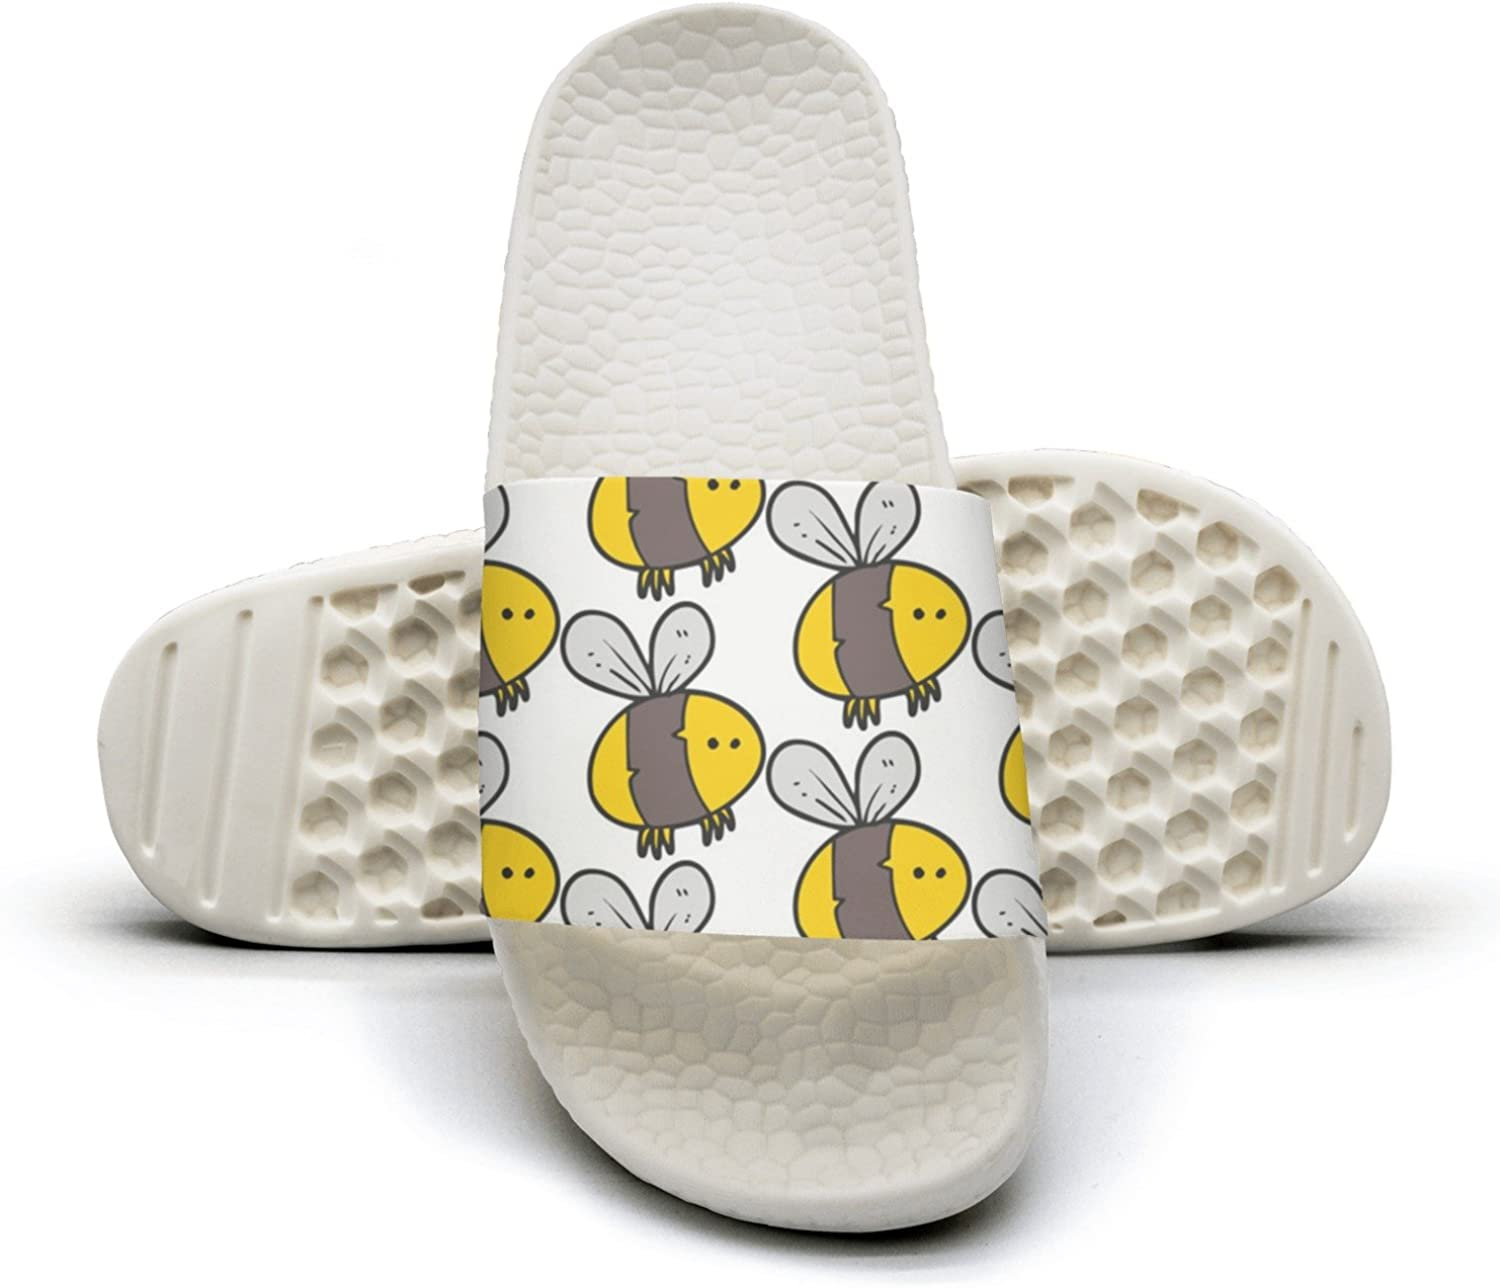 Mens Cute Fat Bee Bumble Insect Non-Slip Soft Foams Slipper Home Slide Sandals